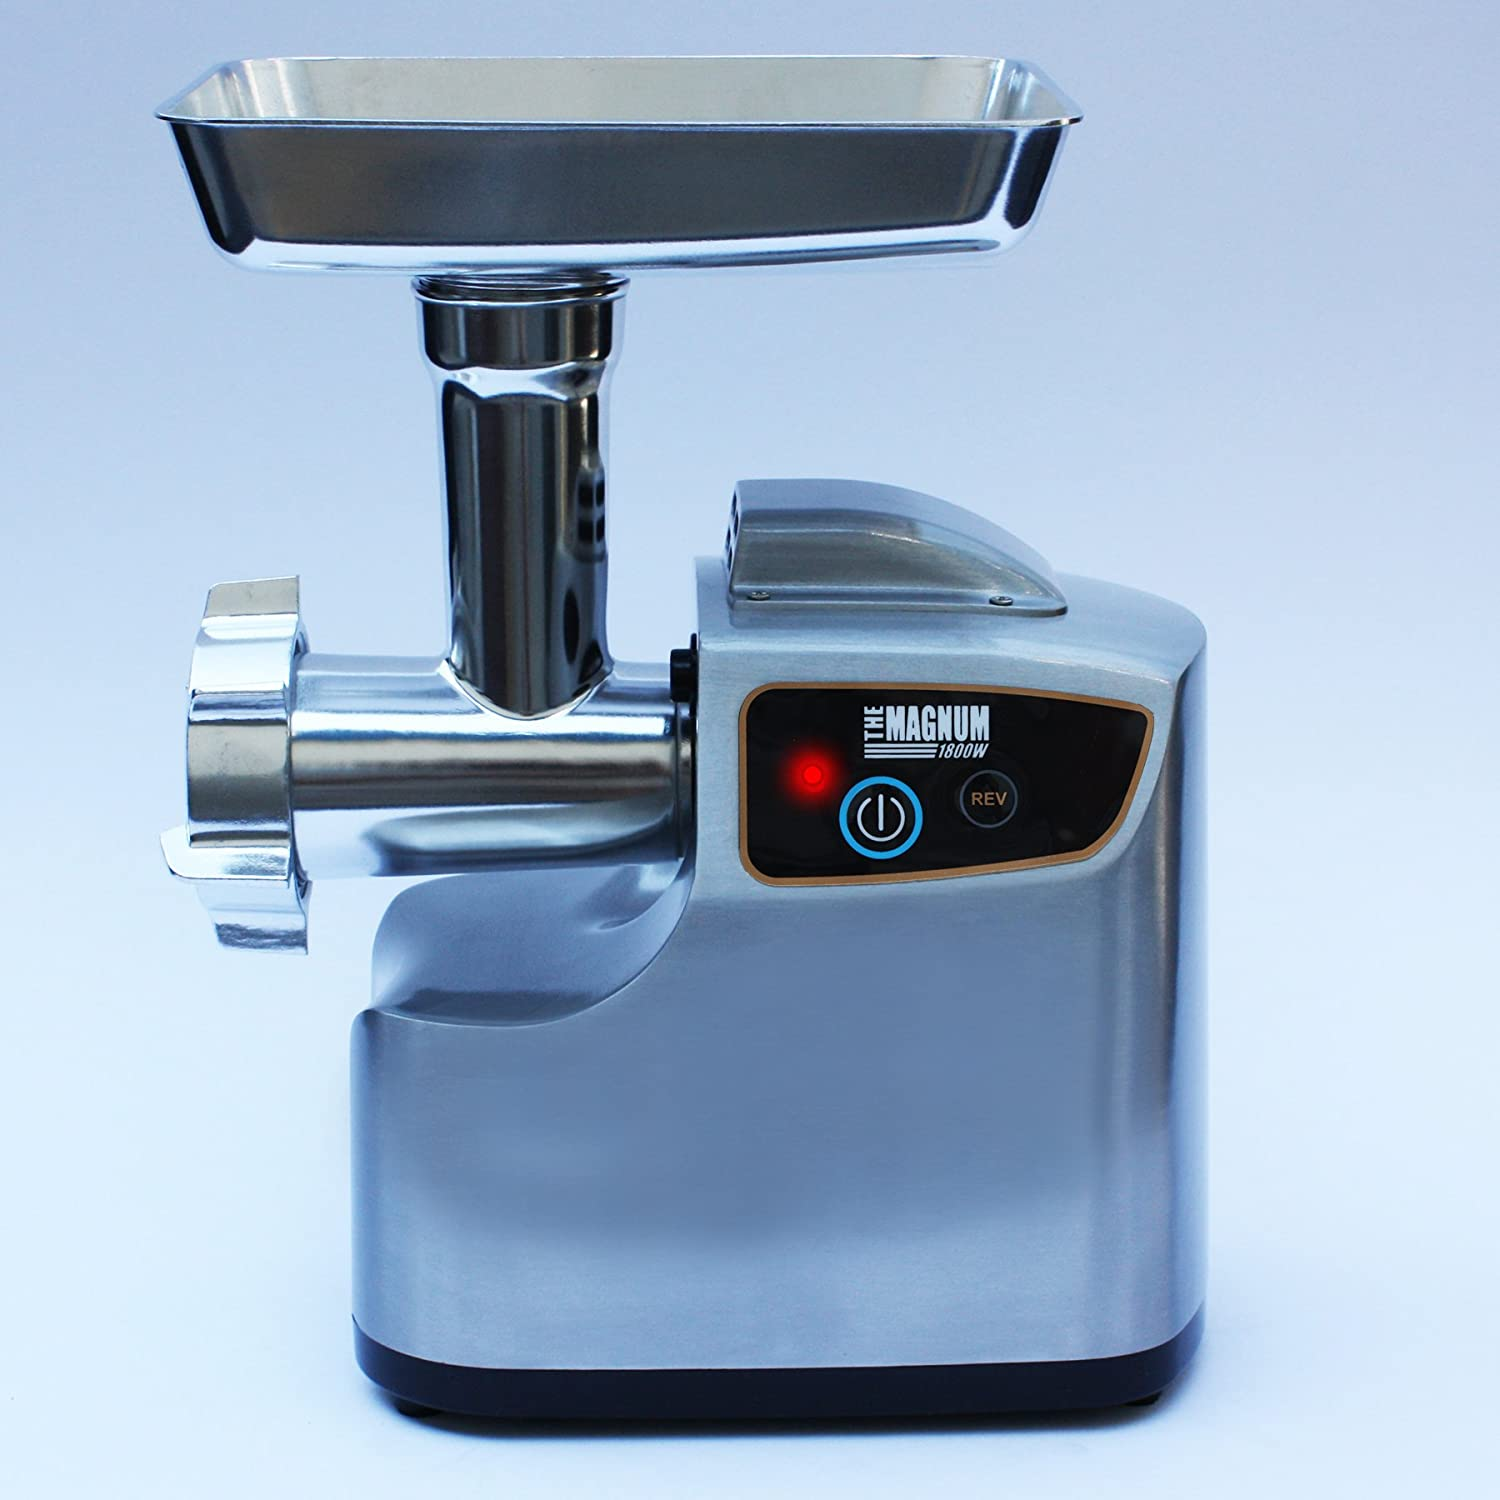 The STX MAGNUM 1800W Stainless Steel Electric Meat Grinder & Tomato Juicer